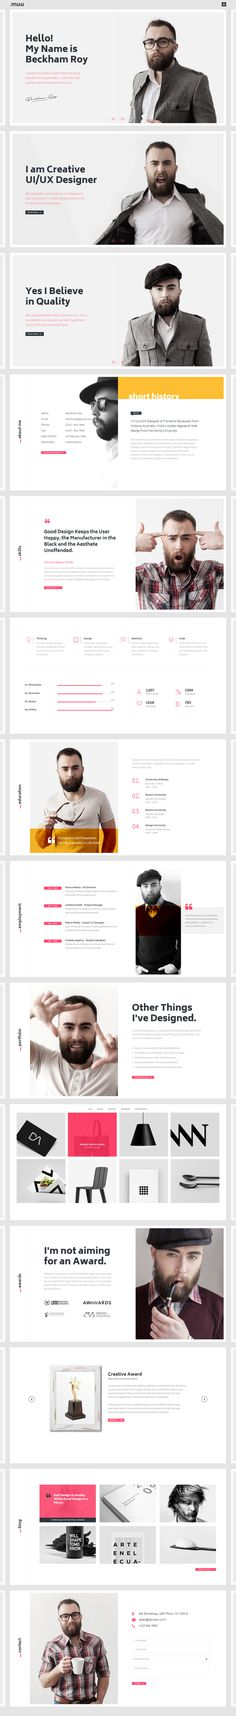 MUU - A creative, unique and interactive personal #resume and #portfolio #HTML5 and #Bootstrap Template - White skin. - https://goo.gl/wNT8u